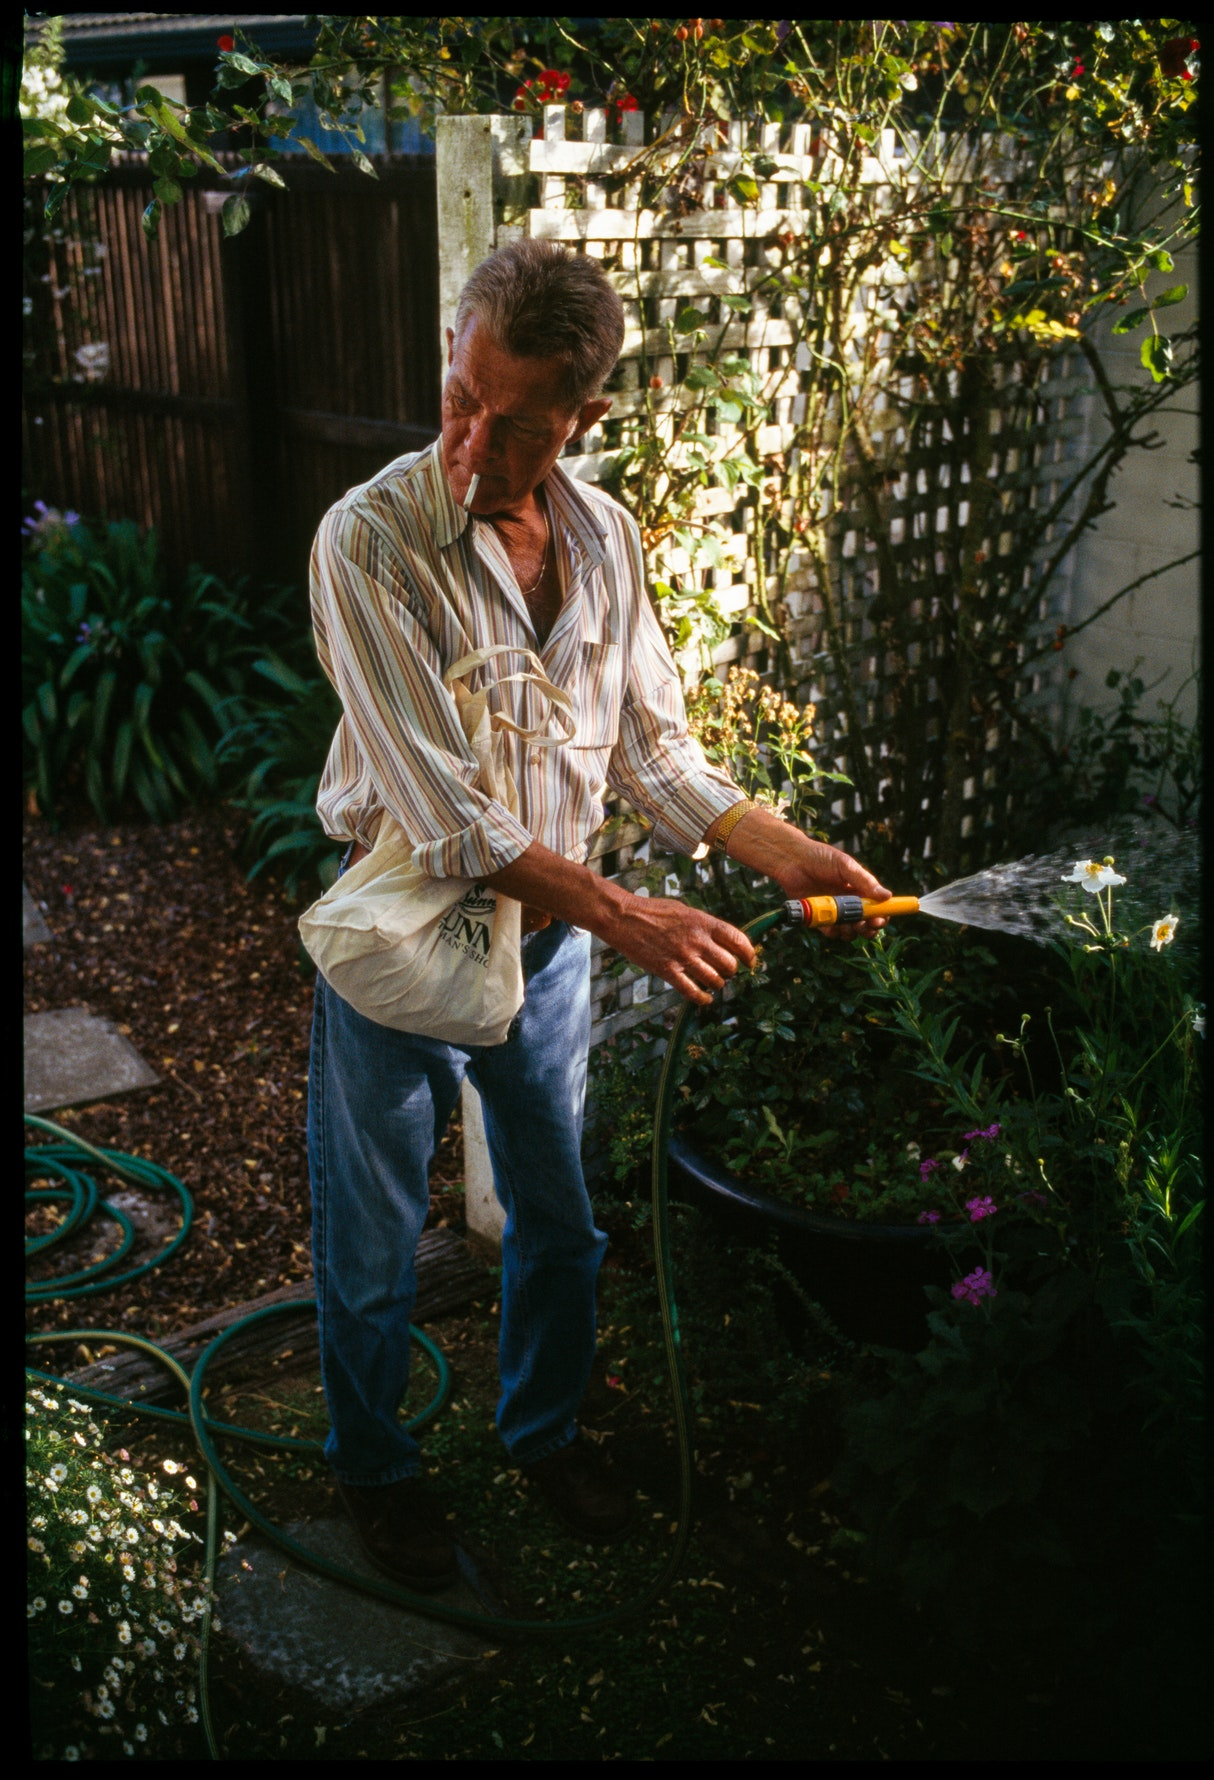 Watering Mum's Garden While She Stays In Isolation, 2006.